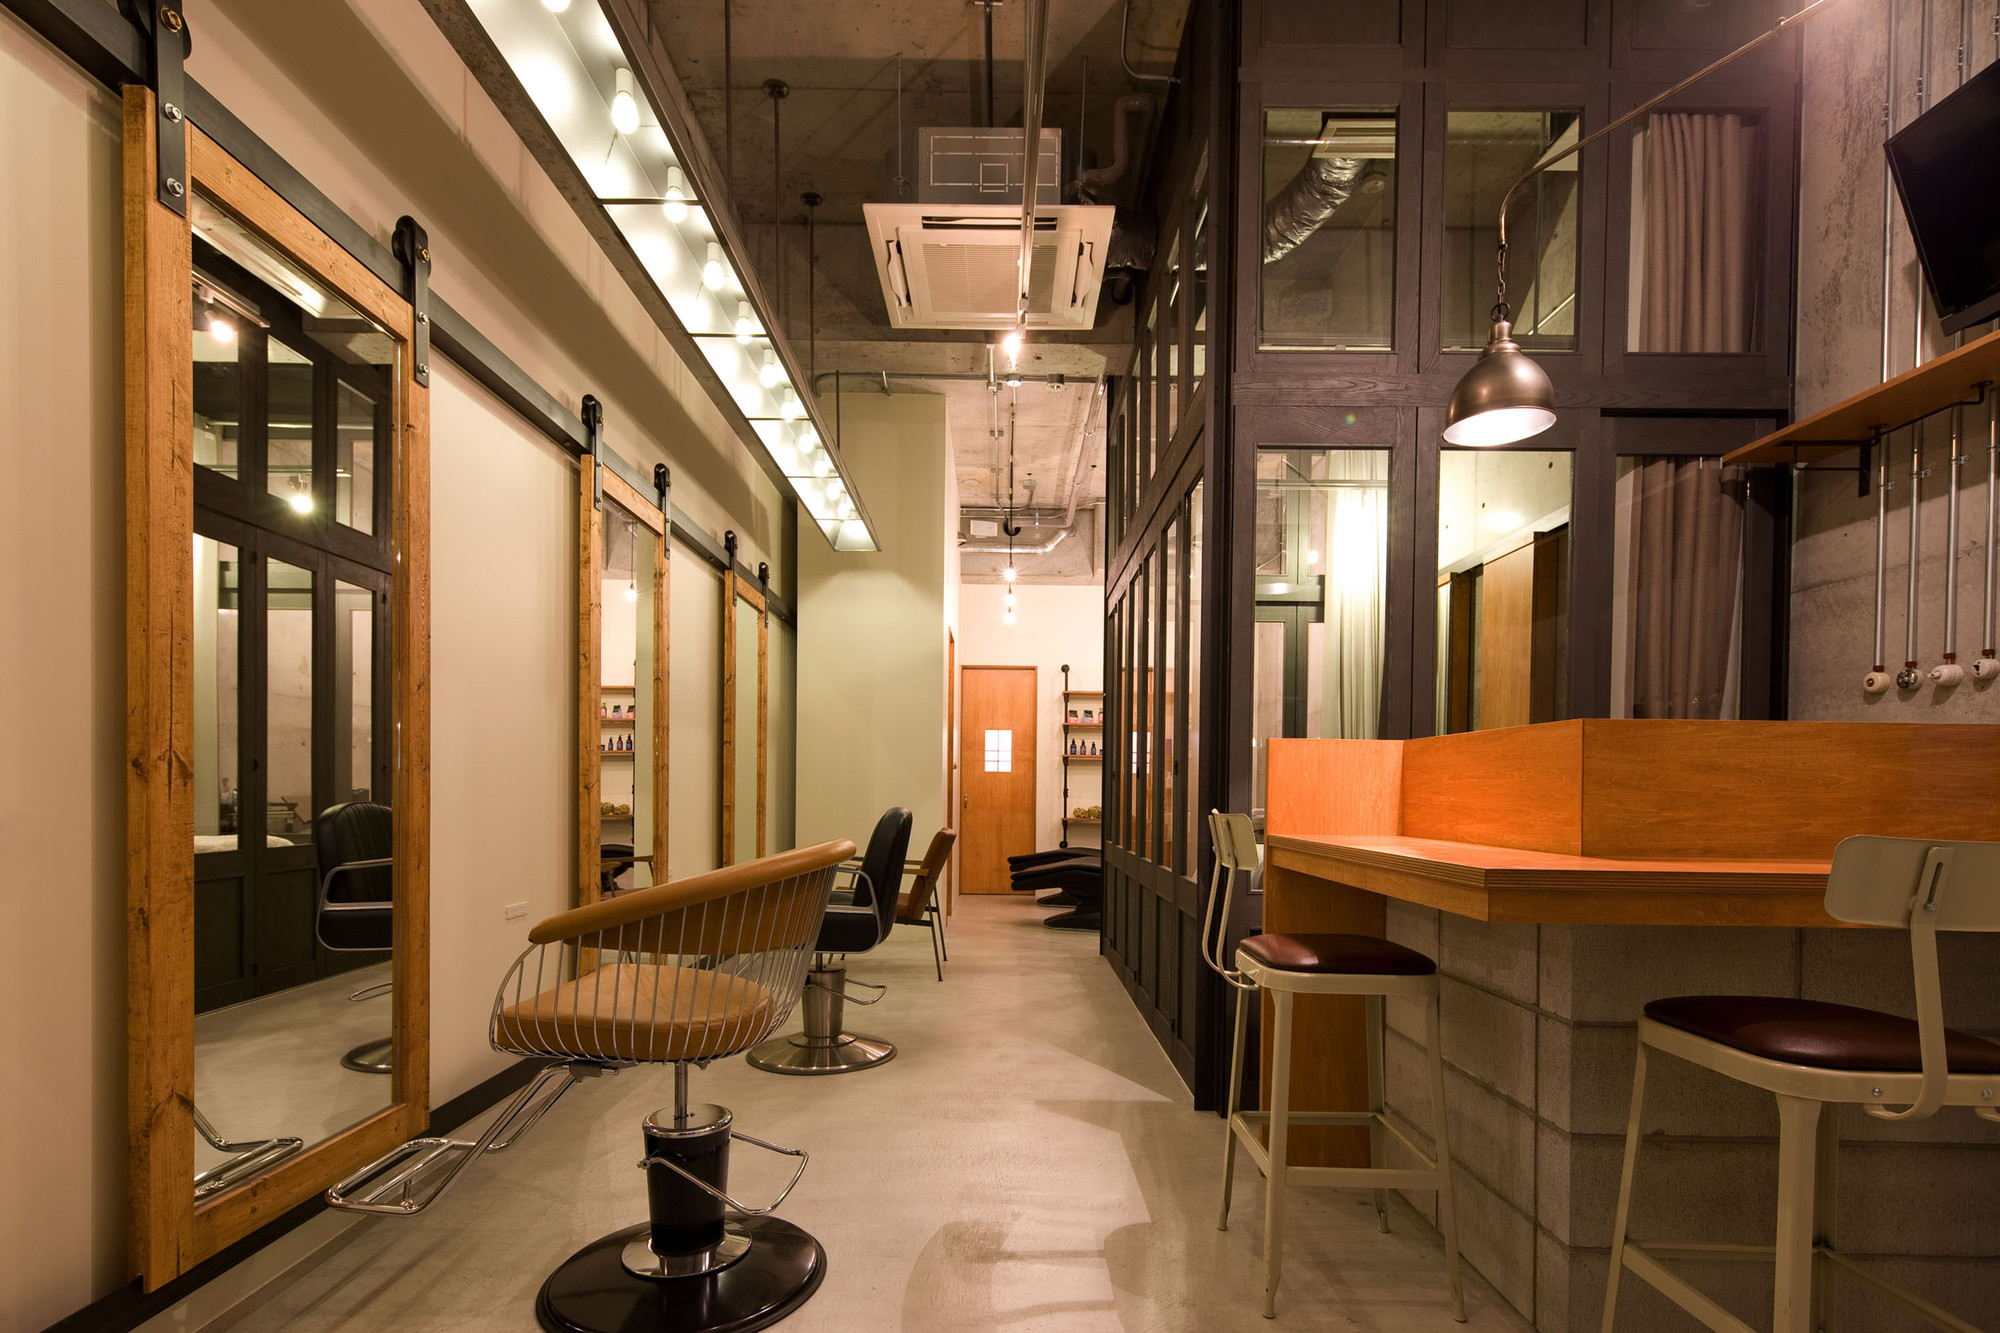 Ki se tsu hair salon iks design archdaily for Salon de design